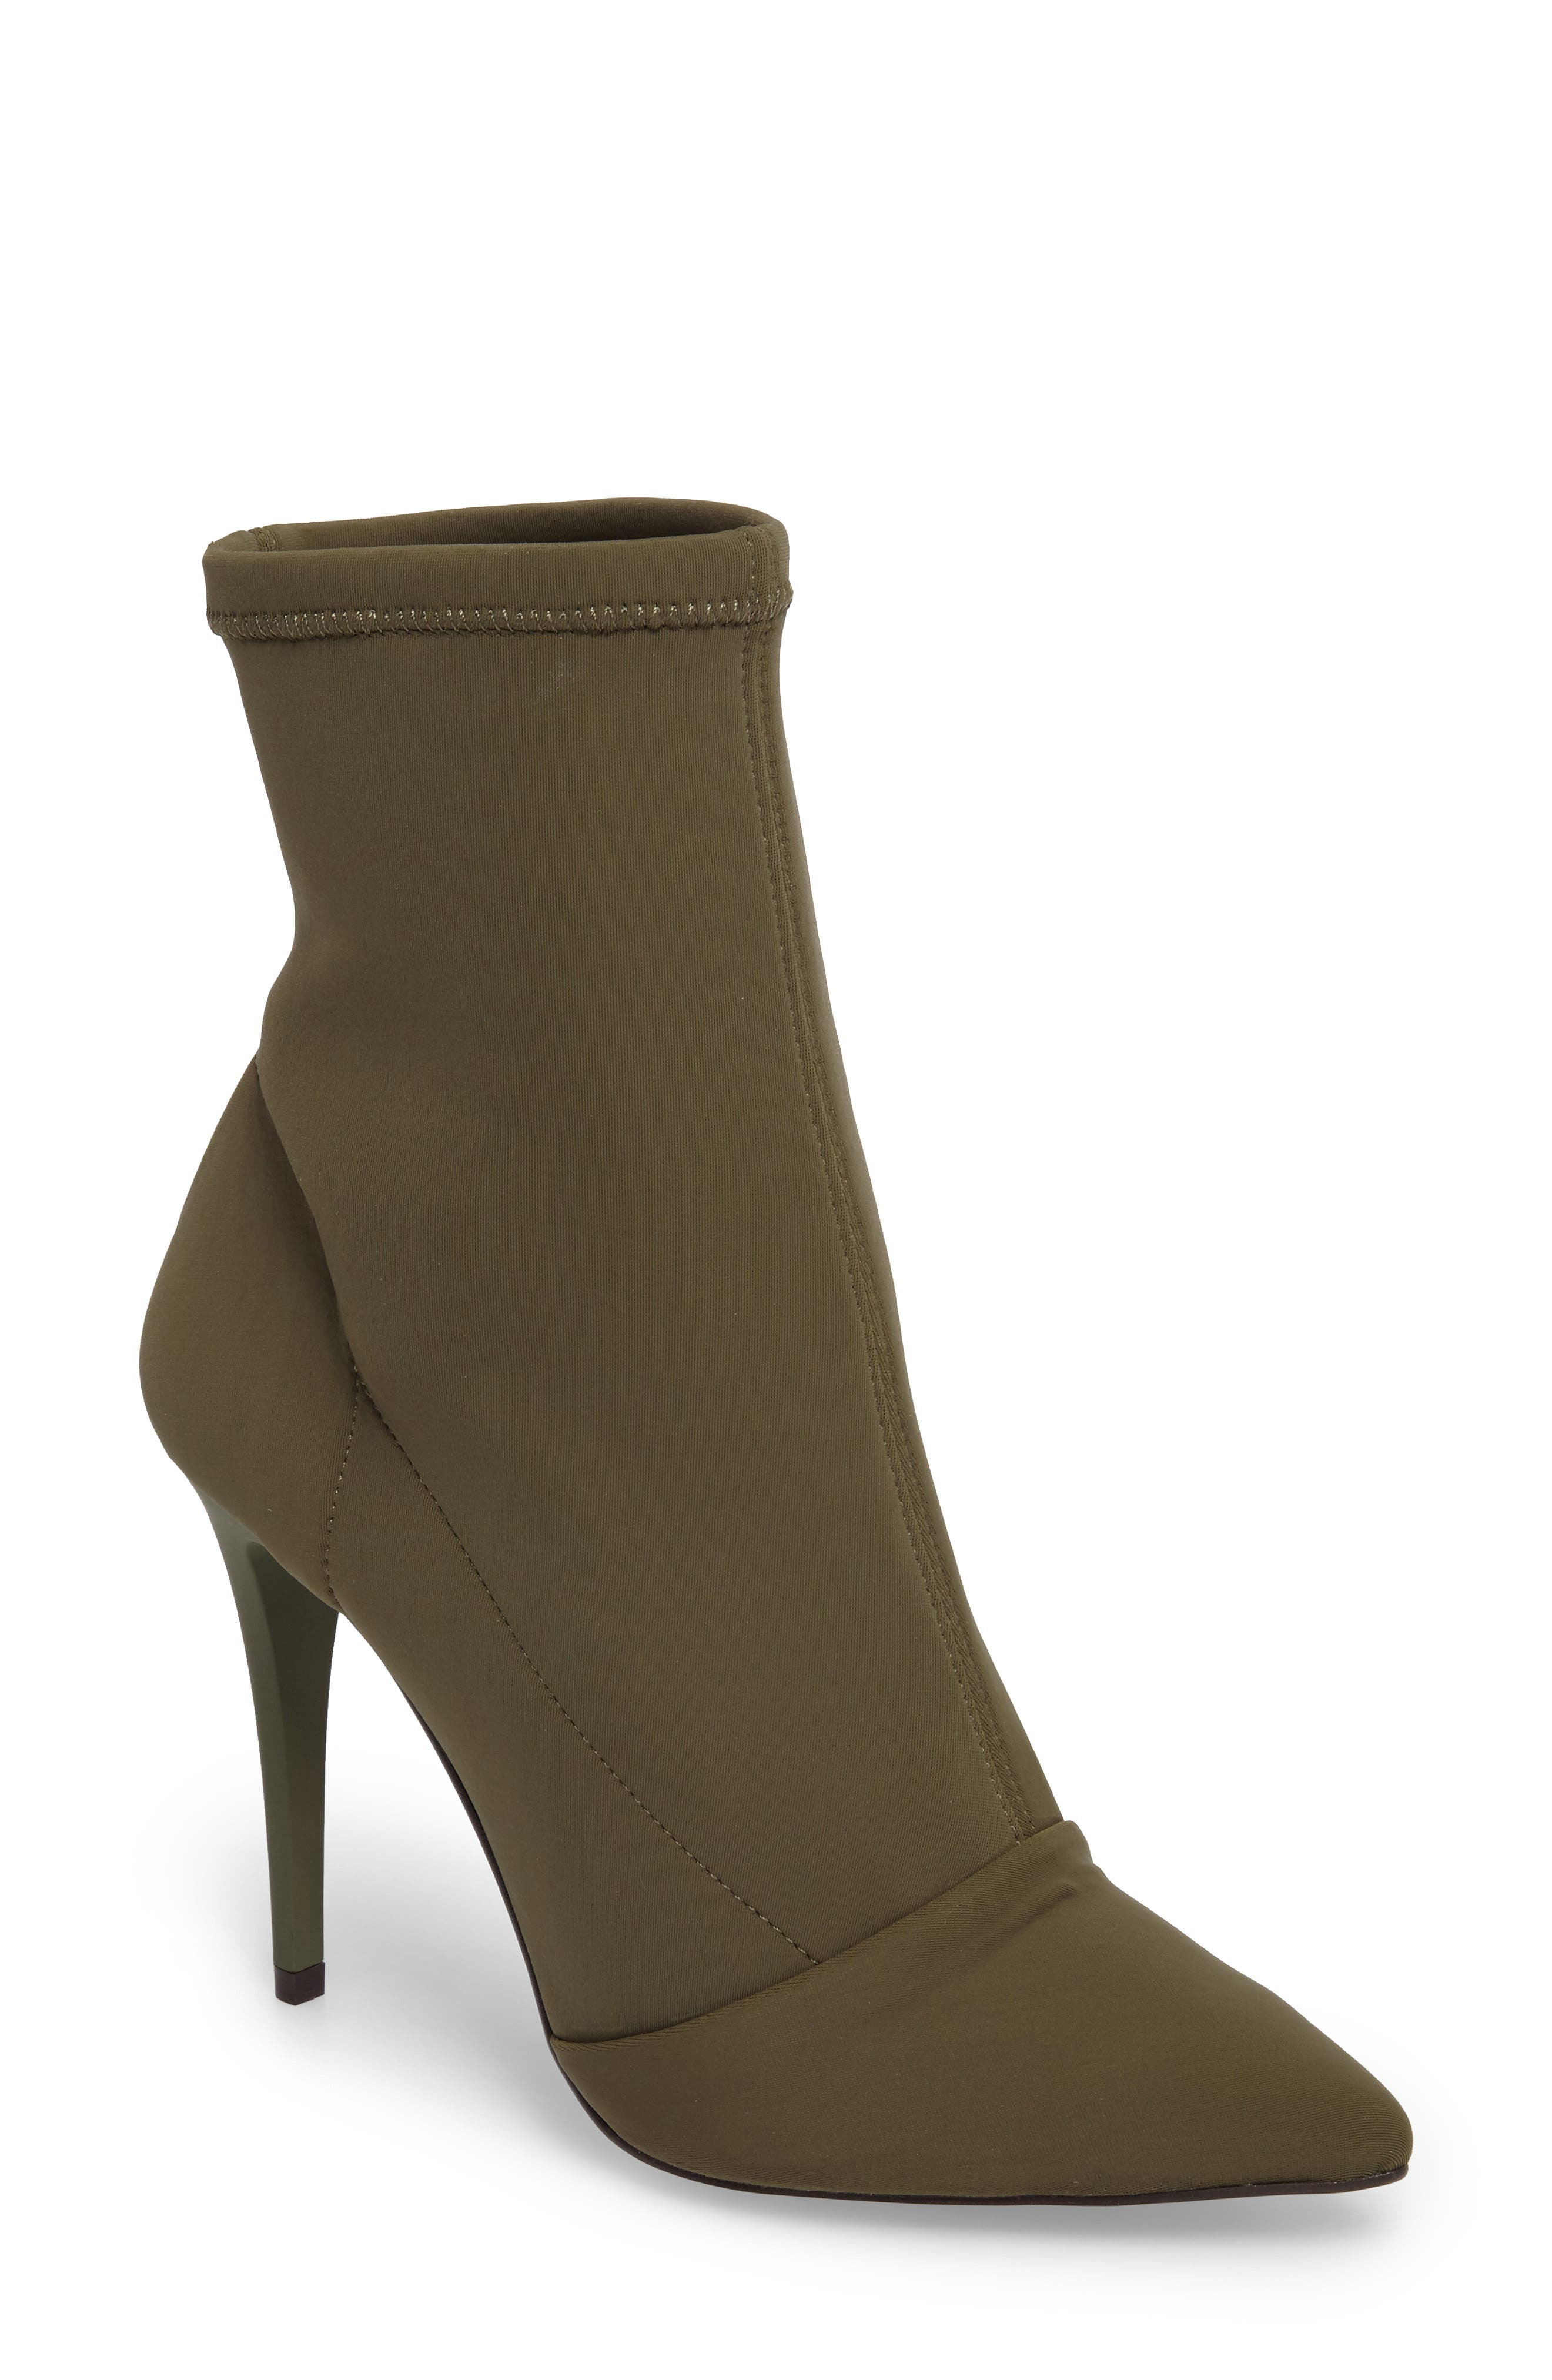 Main Image - Topshop Hubba Pointy Toe Bootie (Women)